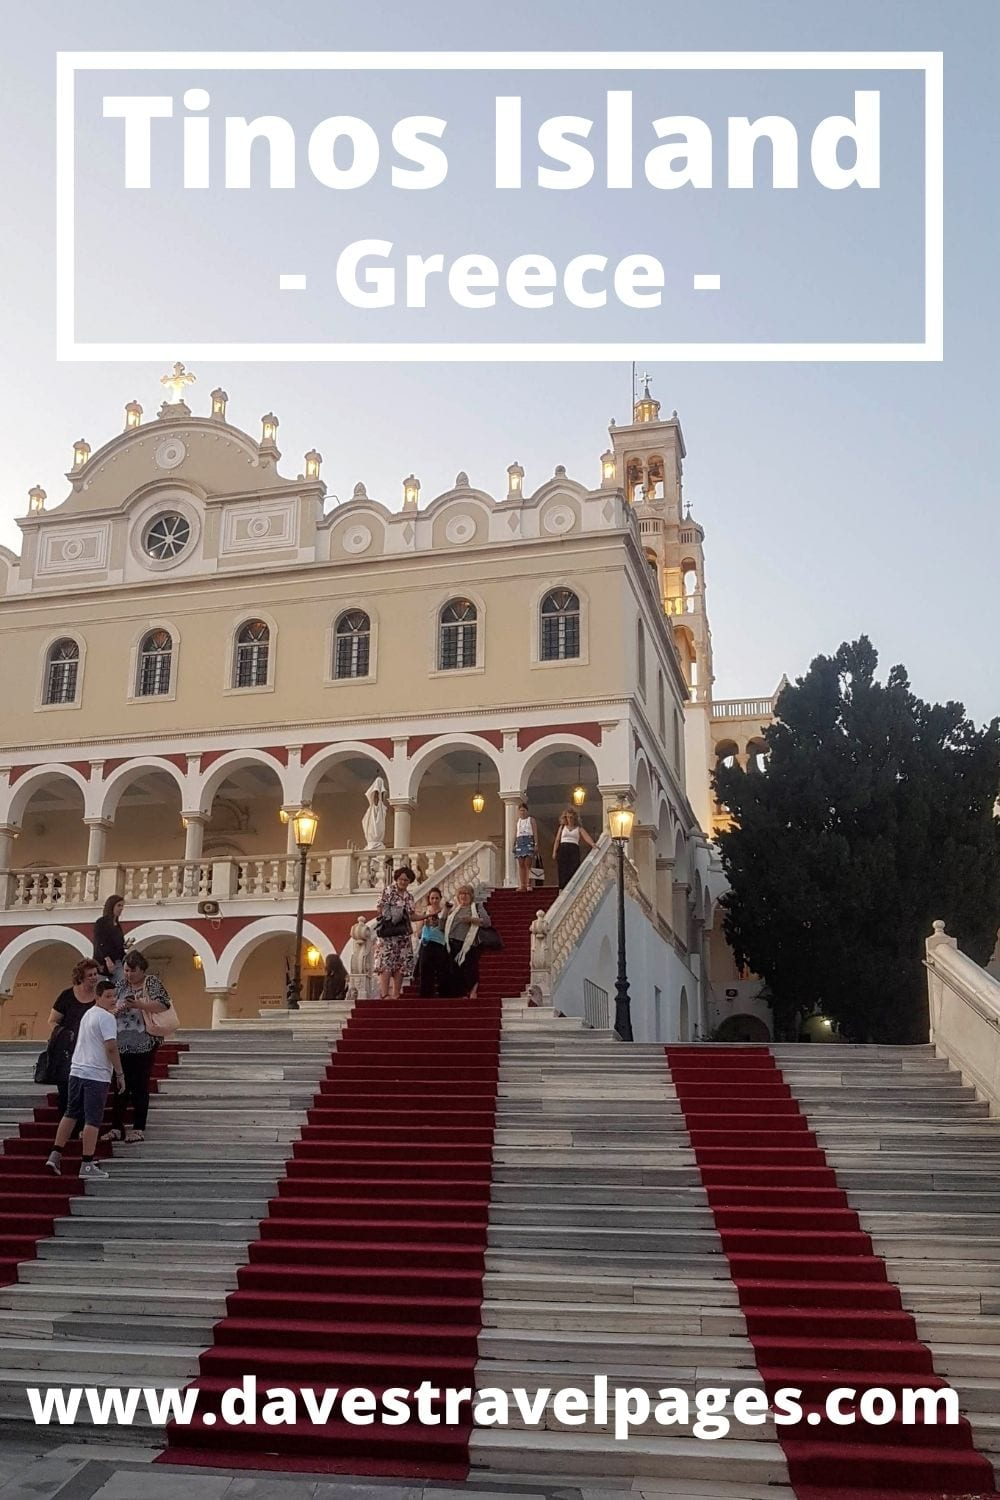 How to get from Mykonos to Tinos island by ferry in Greece